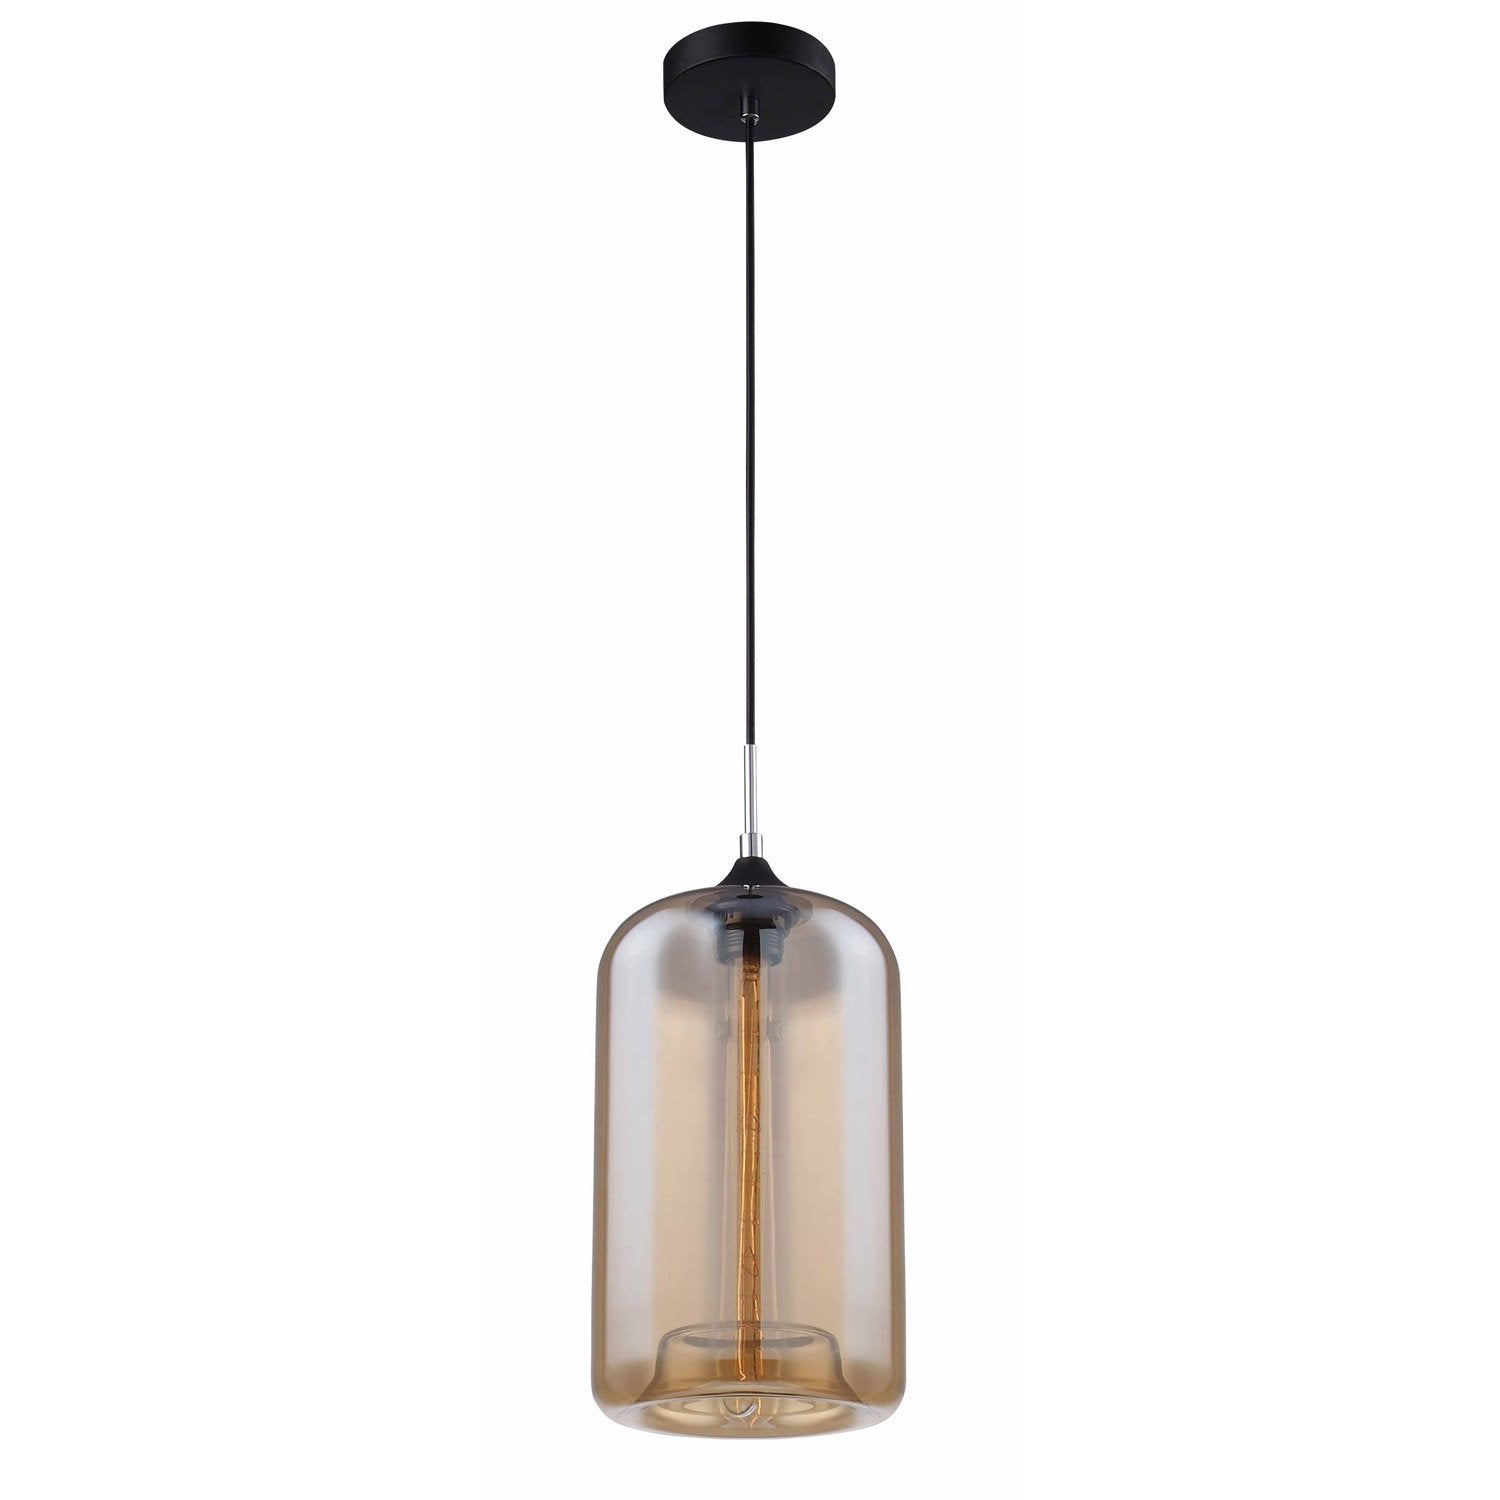 Suspension e27 style industriel soho verre fum 1 x 40 w lussiol leroy merlin - Suspension new york leroy merlin ...